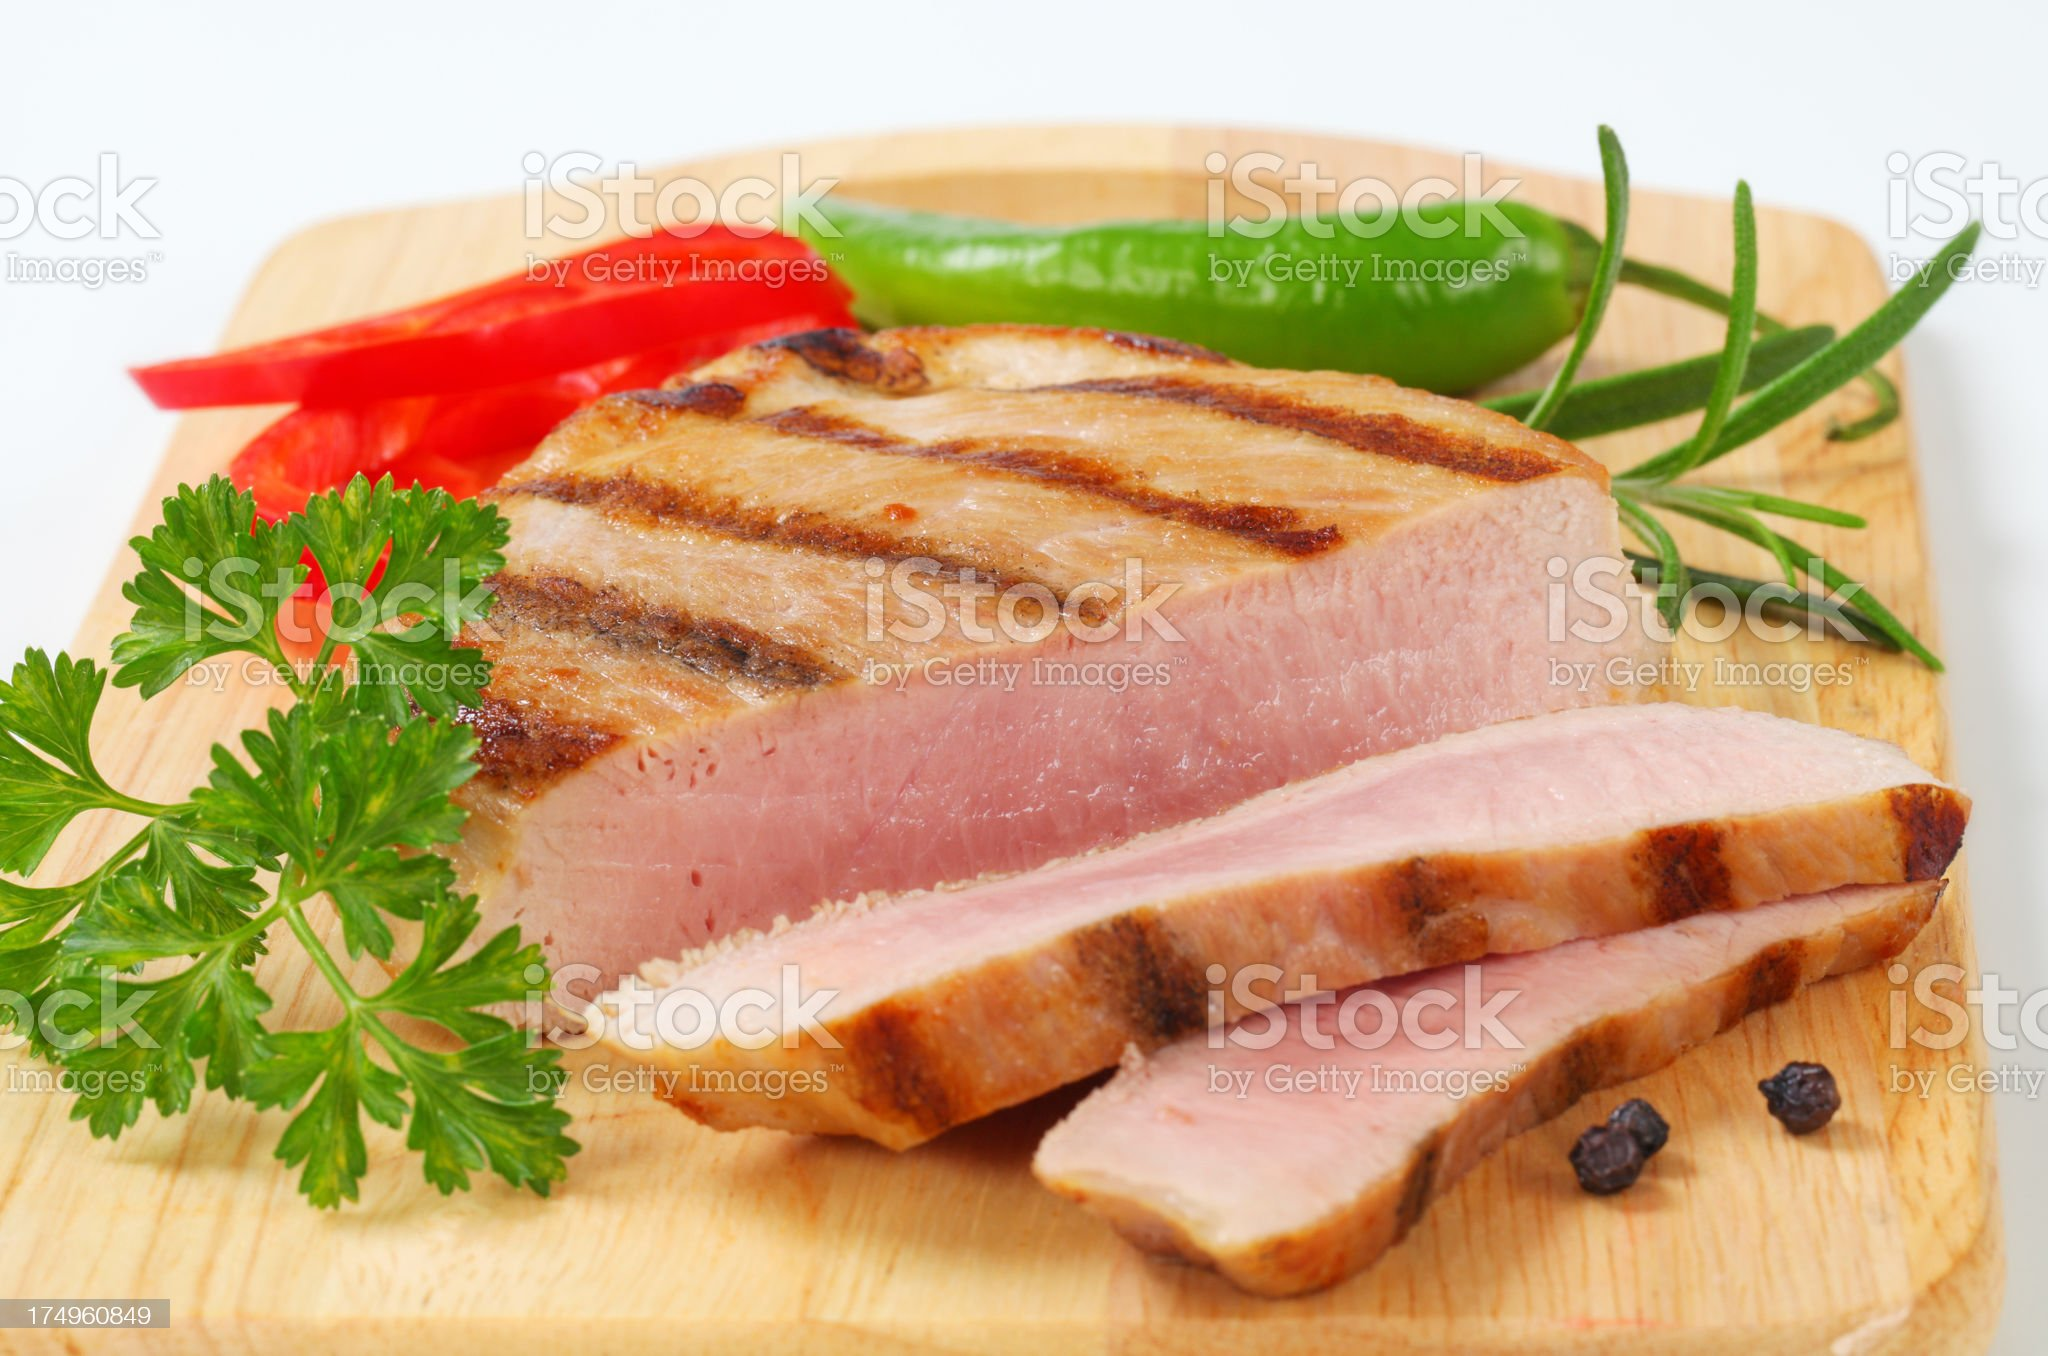 medium pork steak with spices on a cutting board royalty-free stock photo